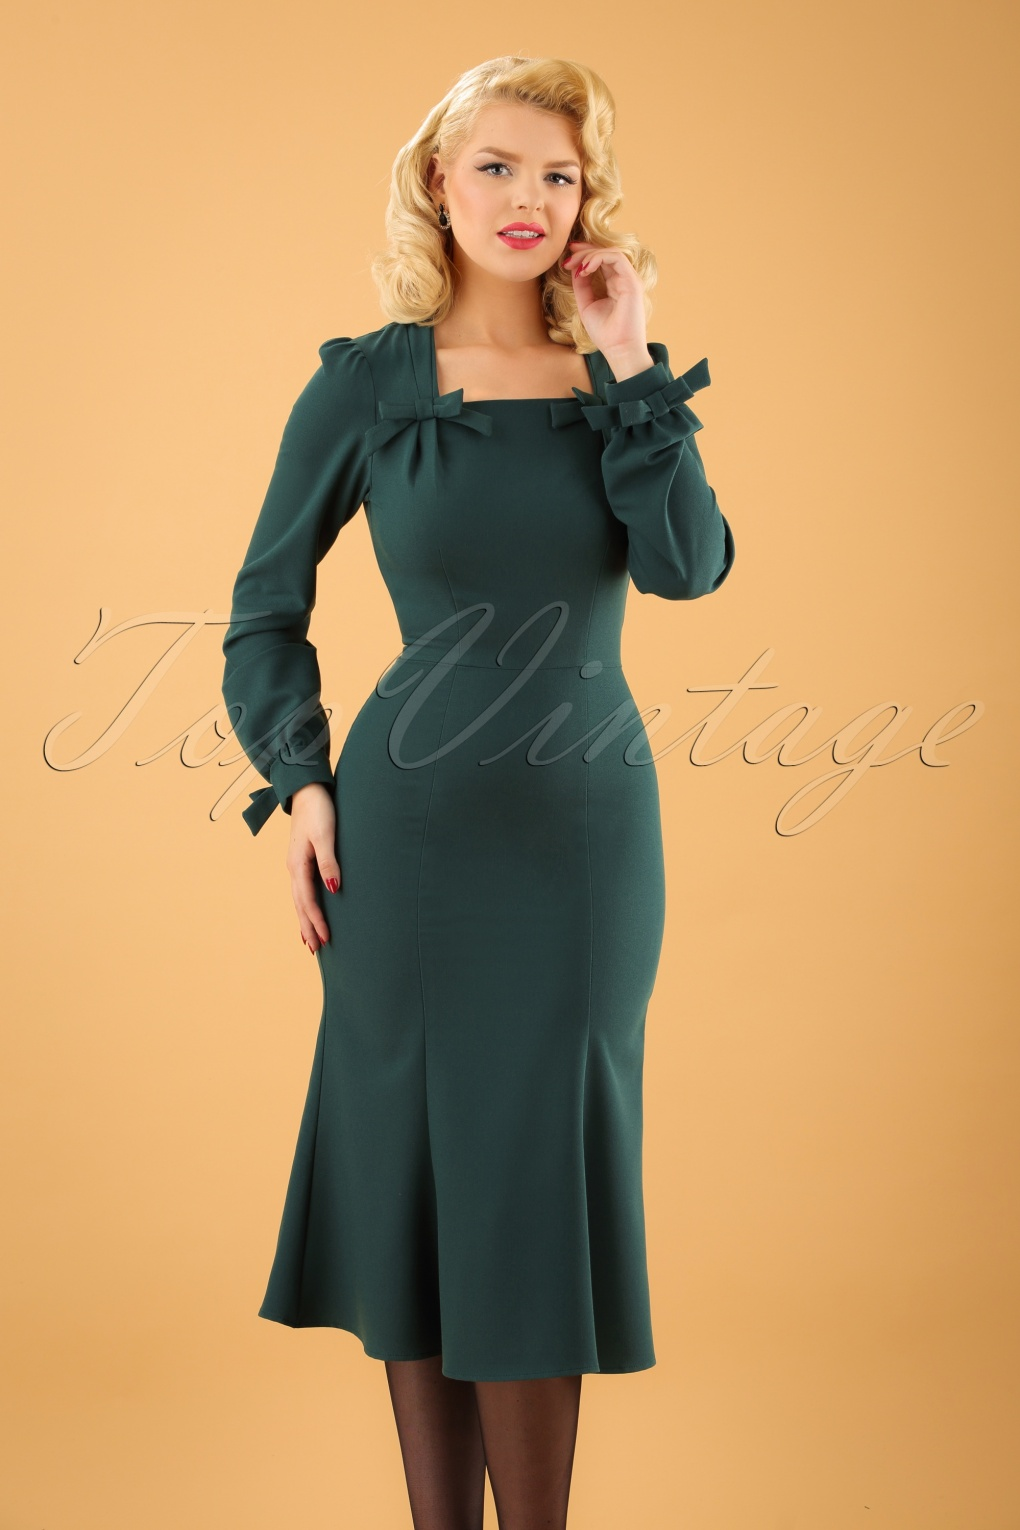 1940s Evening, Prom, Party, Cocktail Dresses & Ball Gowns 40s Micelena Bows Dress in Forest Green £153.84 AT vintagedancer.com